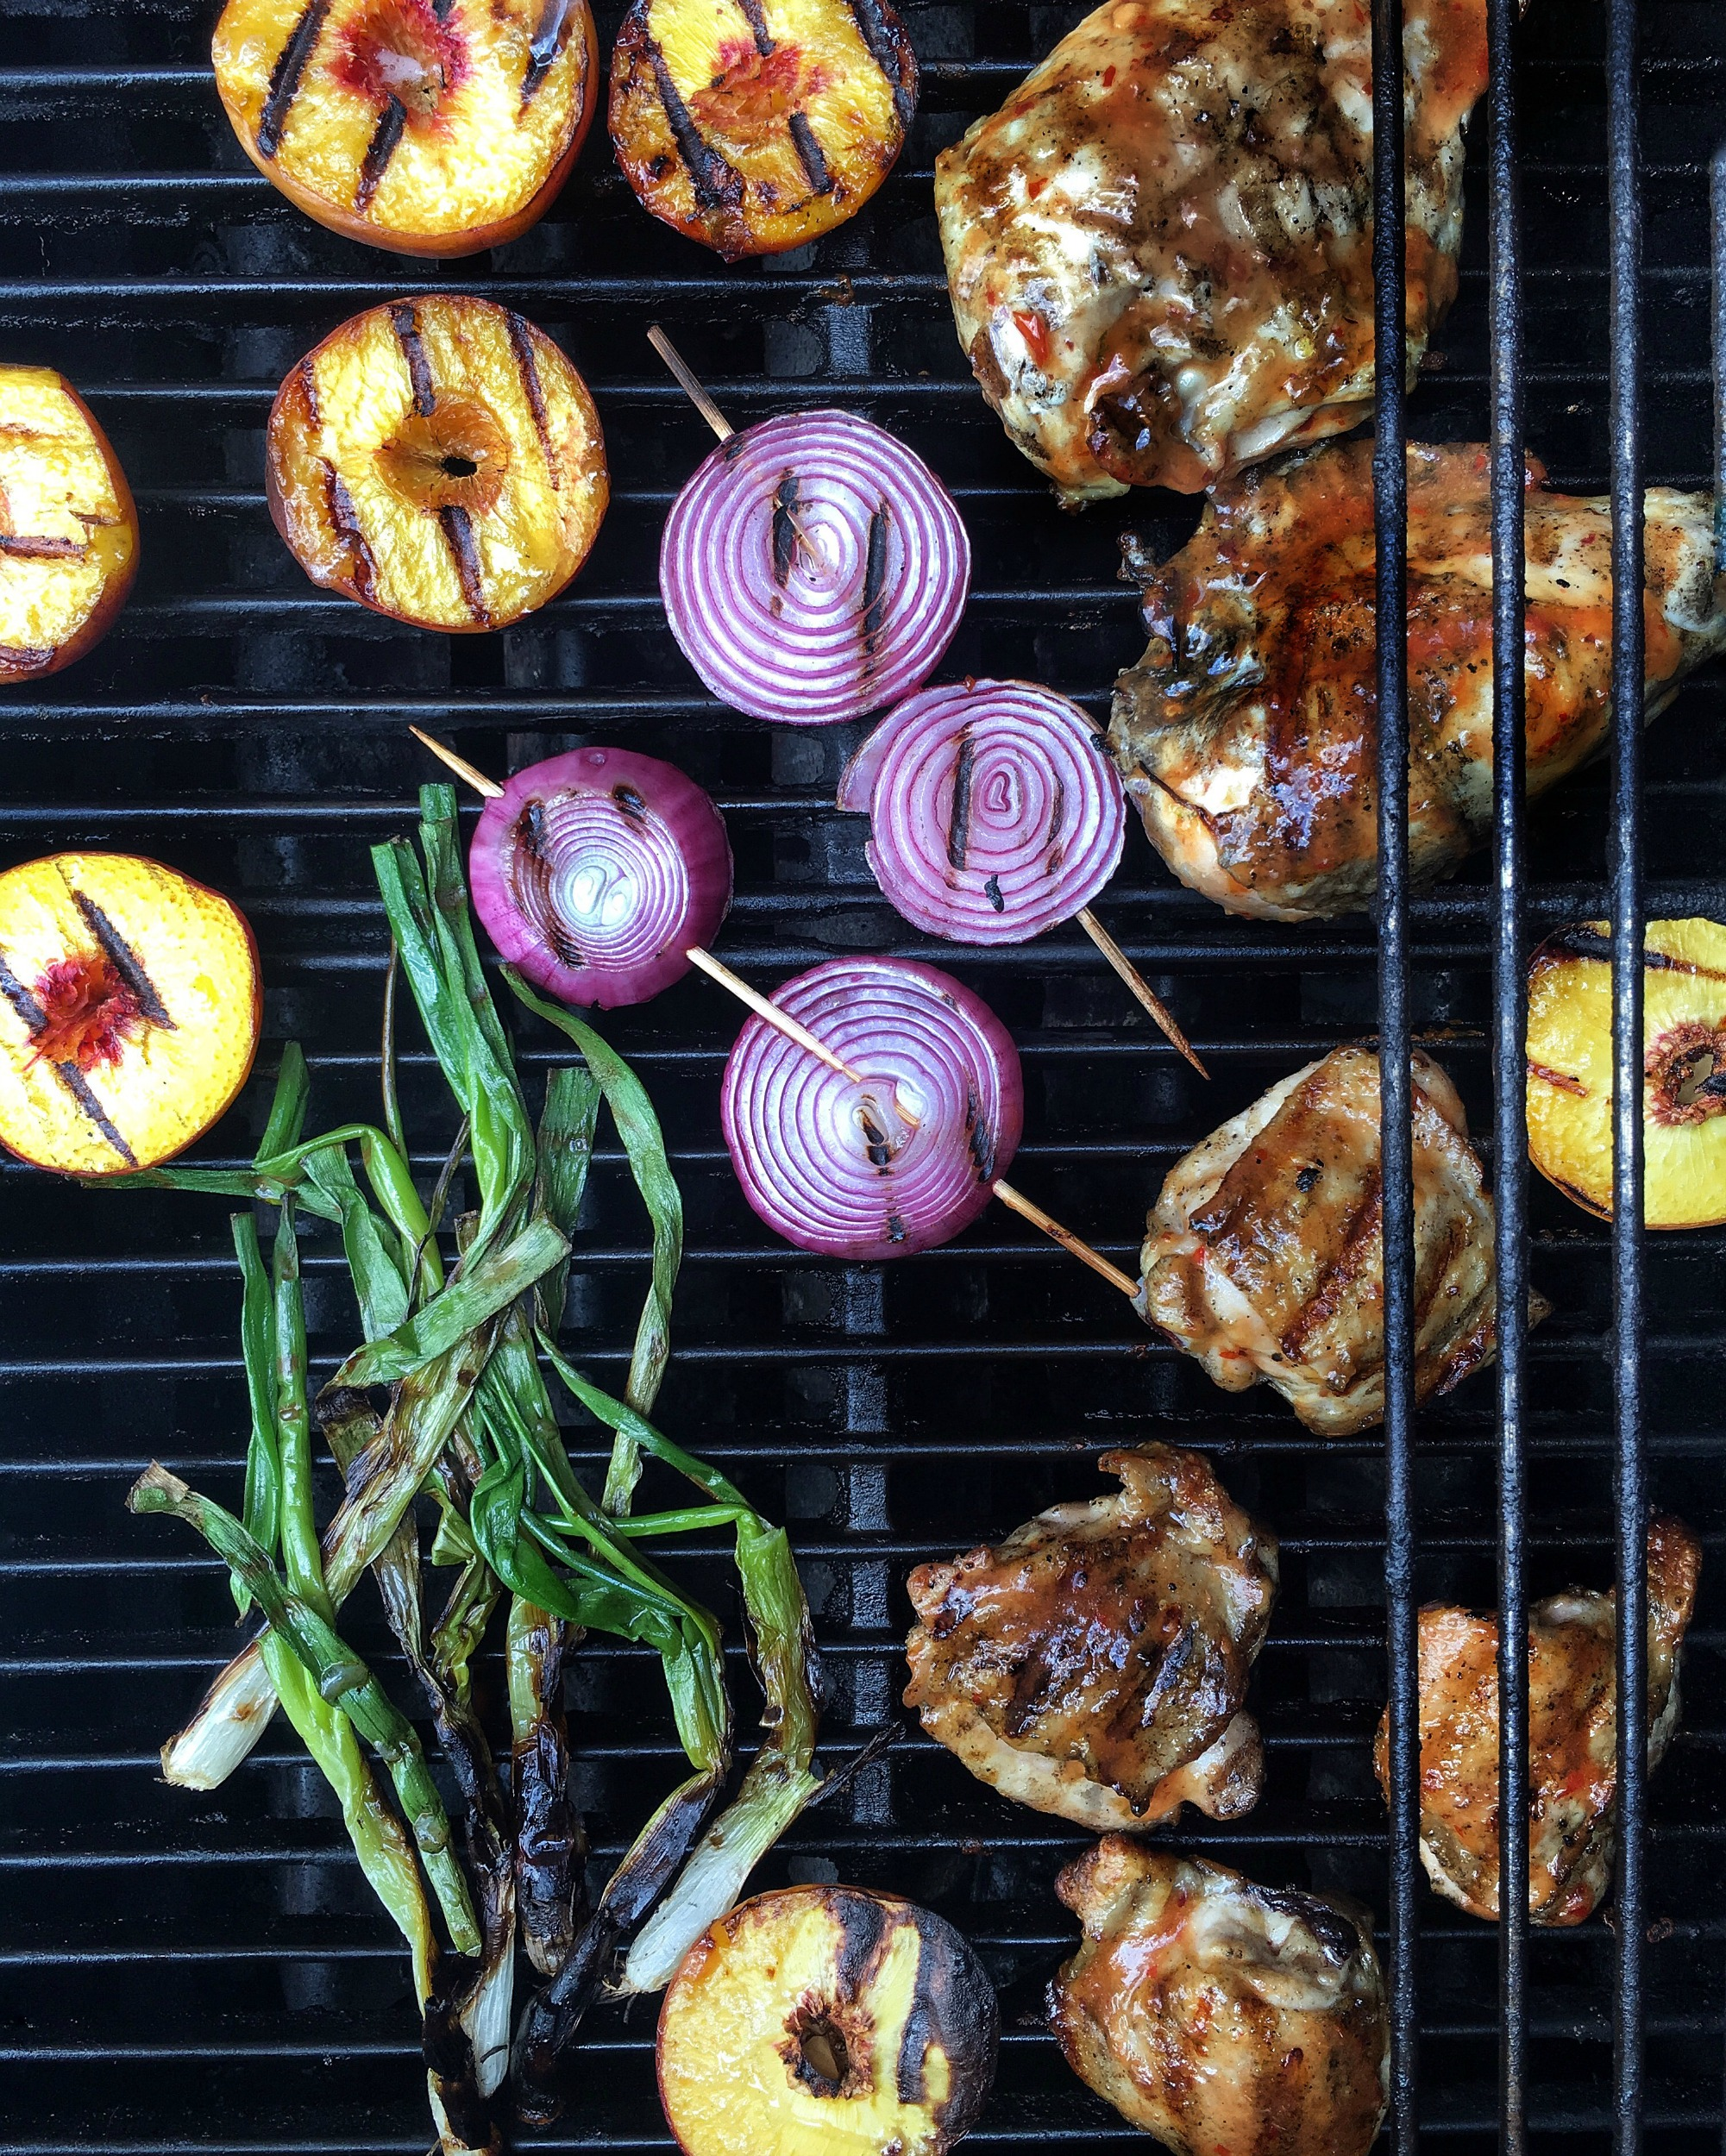 100+ Best Grilling Ideas & Recipes